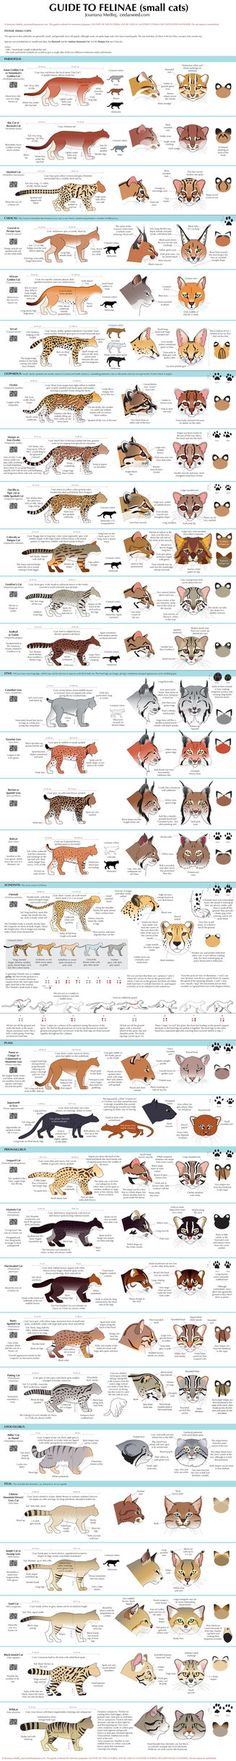 To view both parts of this chart together in full size, you need to go to my website. All the Little Cats (Felinae) species (no subspecies!) are shown here, save for a couple listed at the top of t...